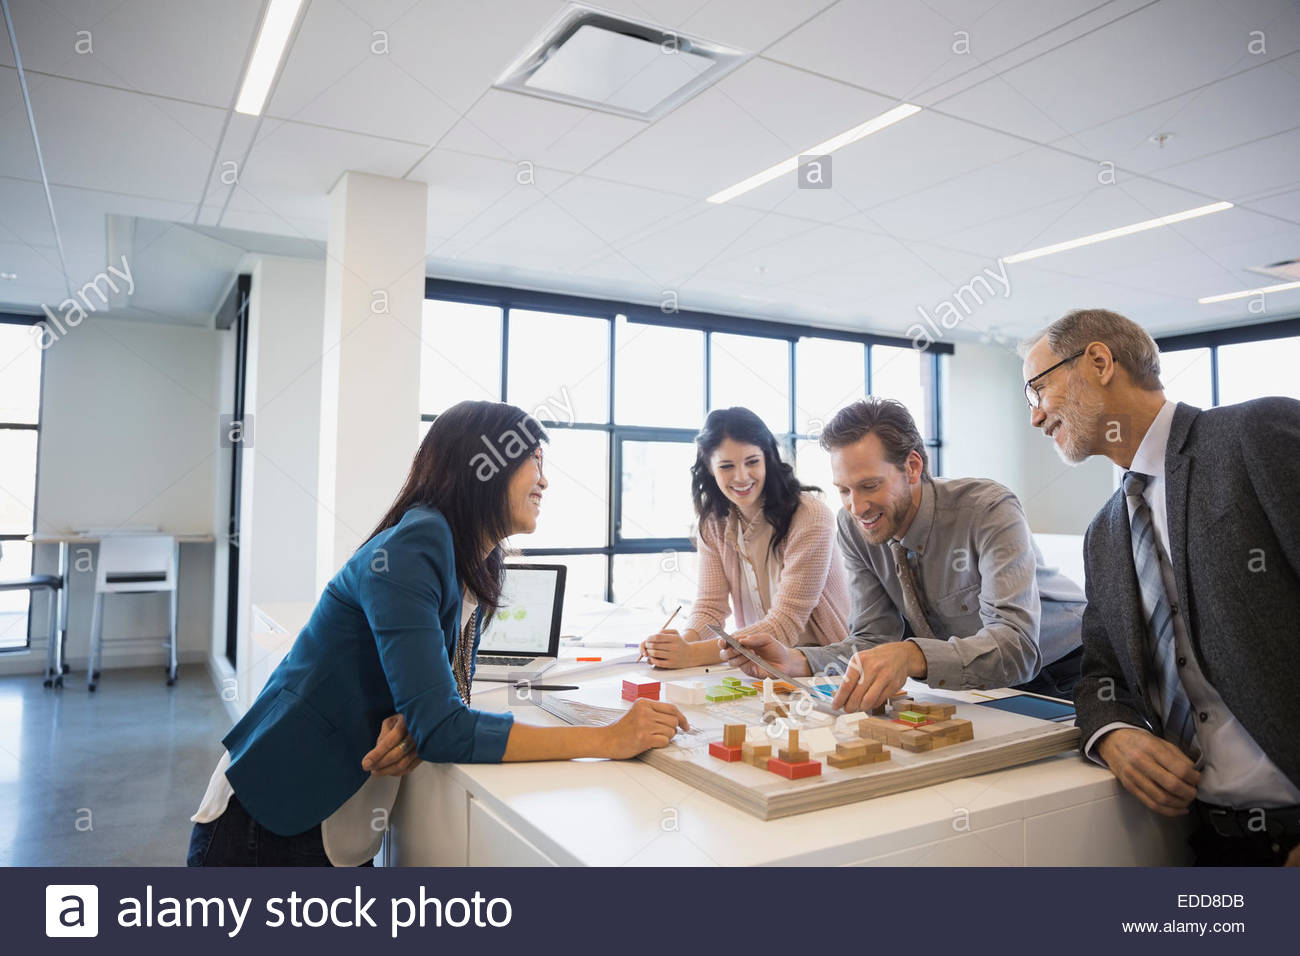 Architects meeting around model in office - Stock Image